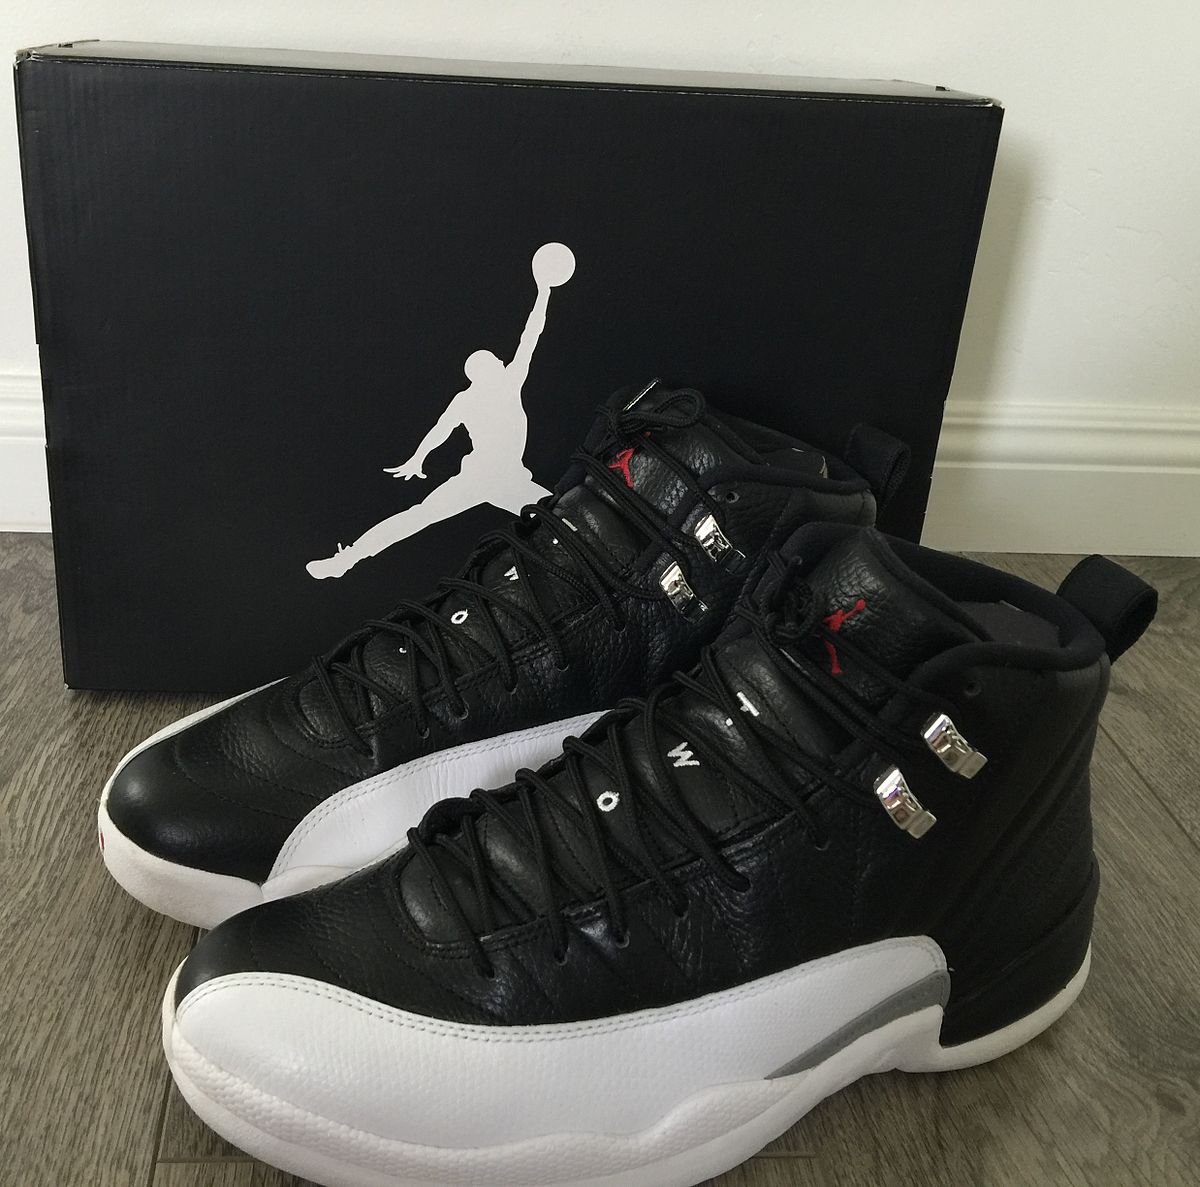 6b0817393ee Air Jordan Retro XII - Wikipedia